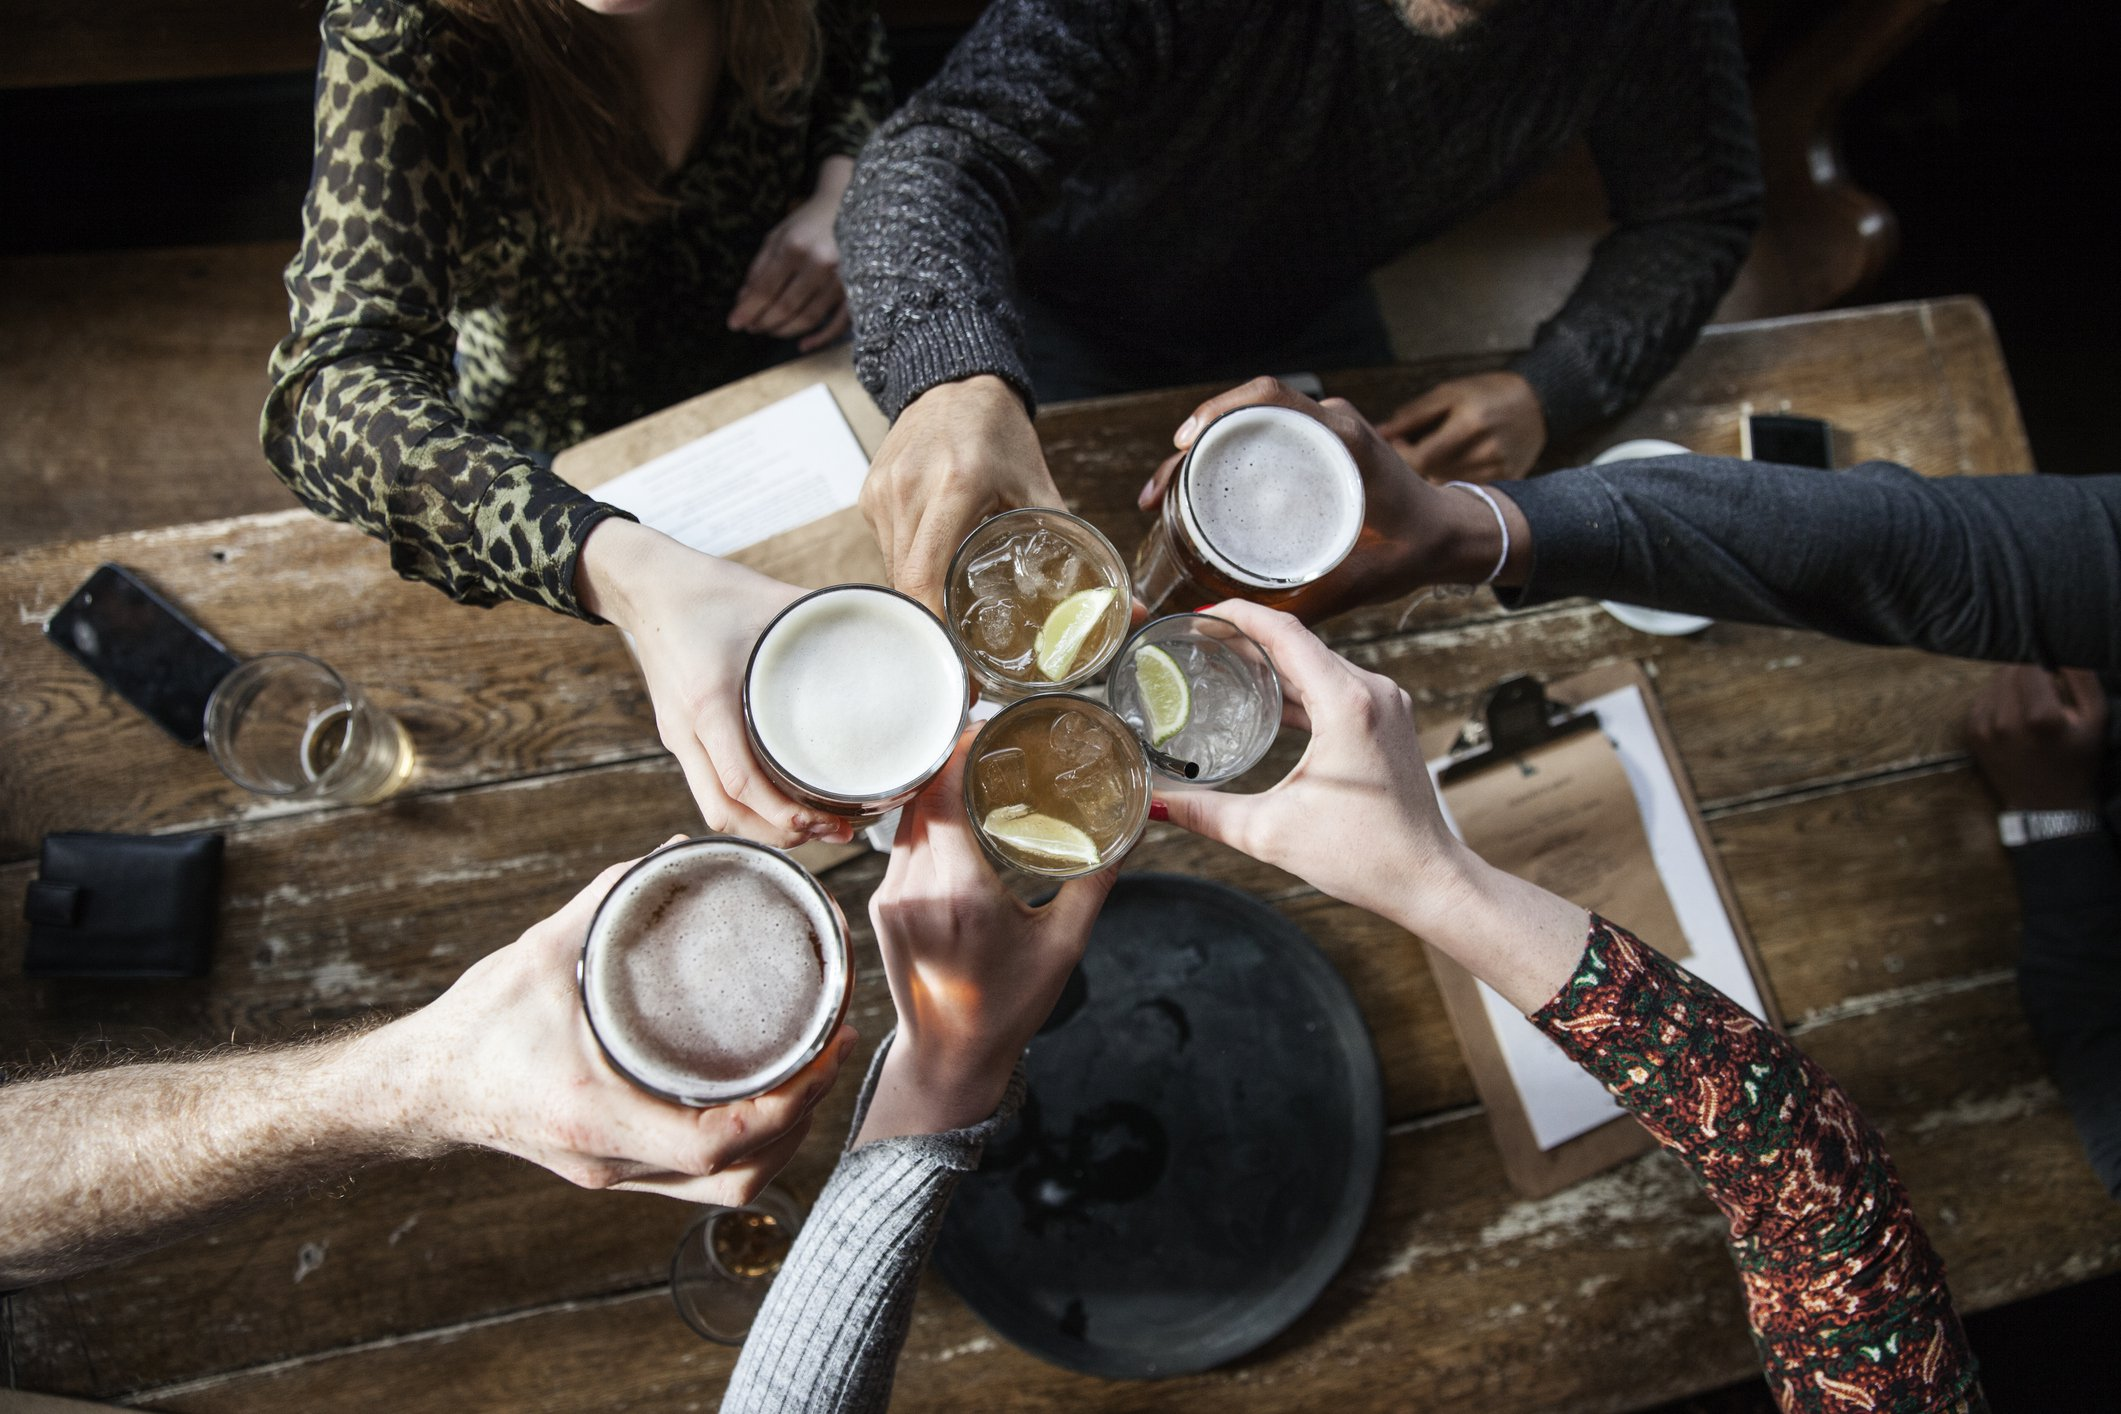 friends at a pub toasting, having a good time, birds view